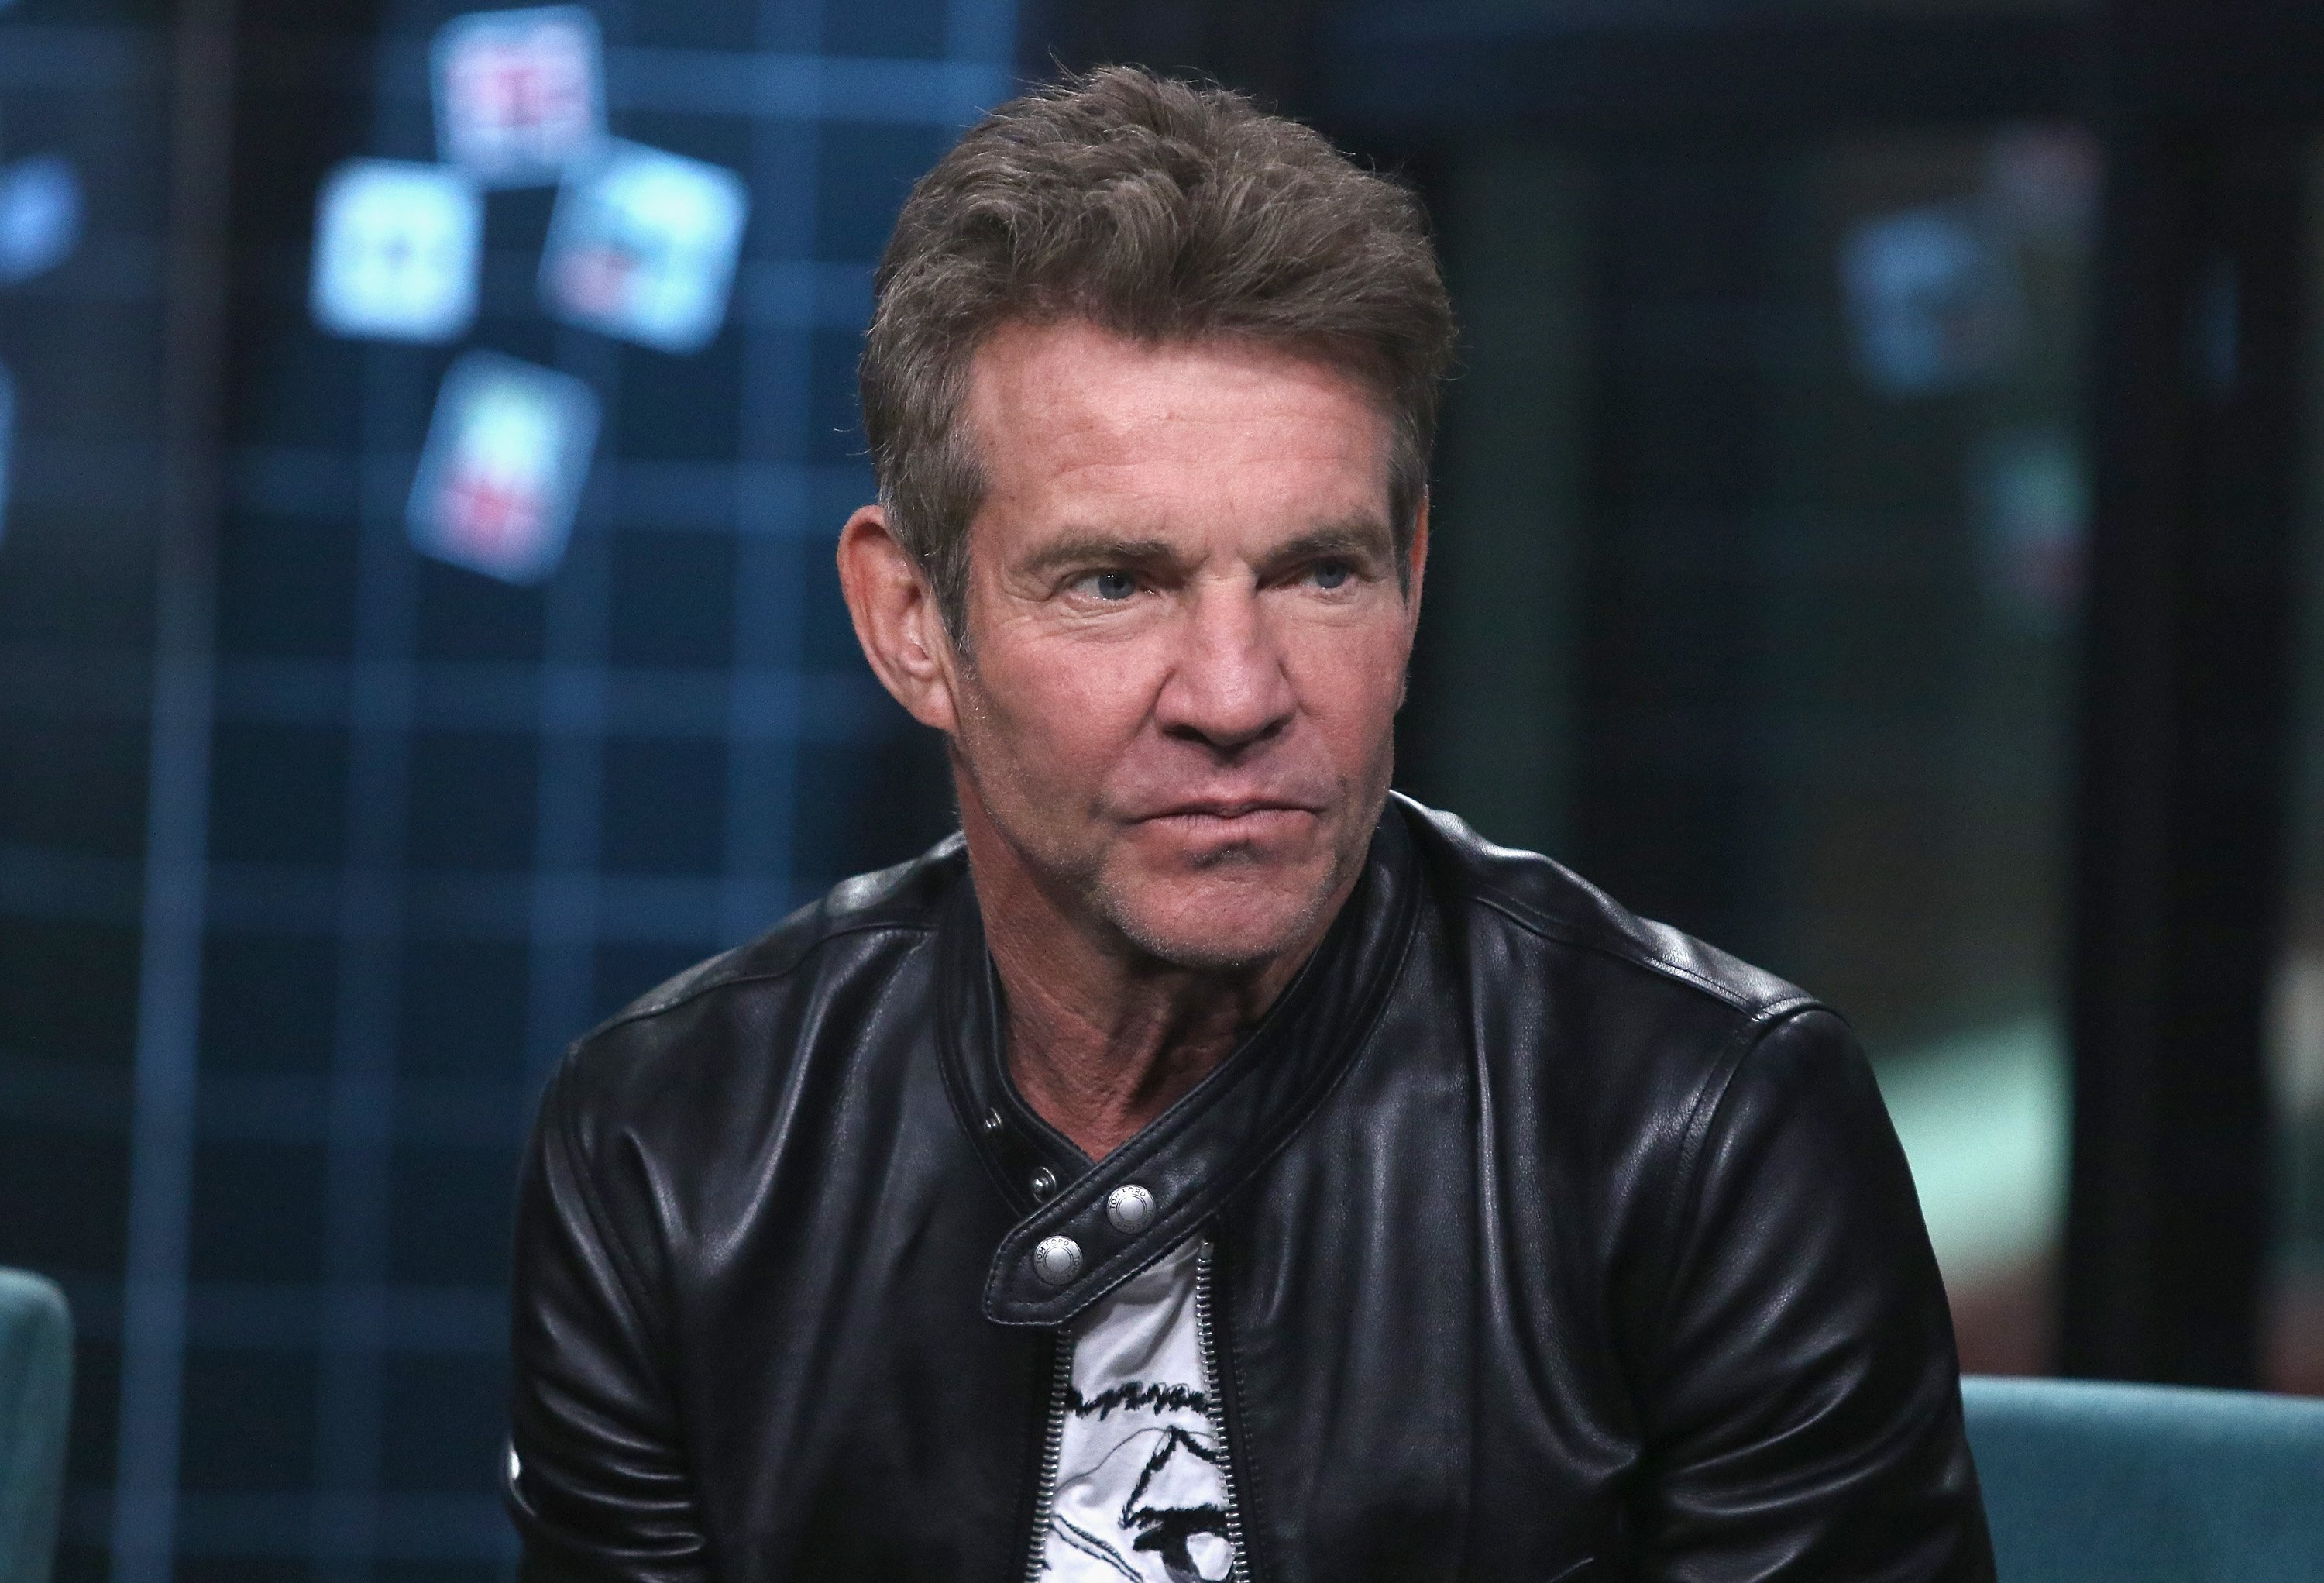 """Dennis Quaid attends the Build Series to discuss """"Out of the Box"""" at Build Studio on November 30, 2018 in New York City. 